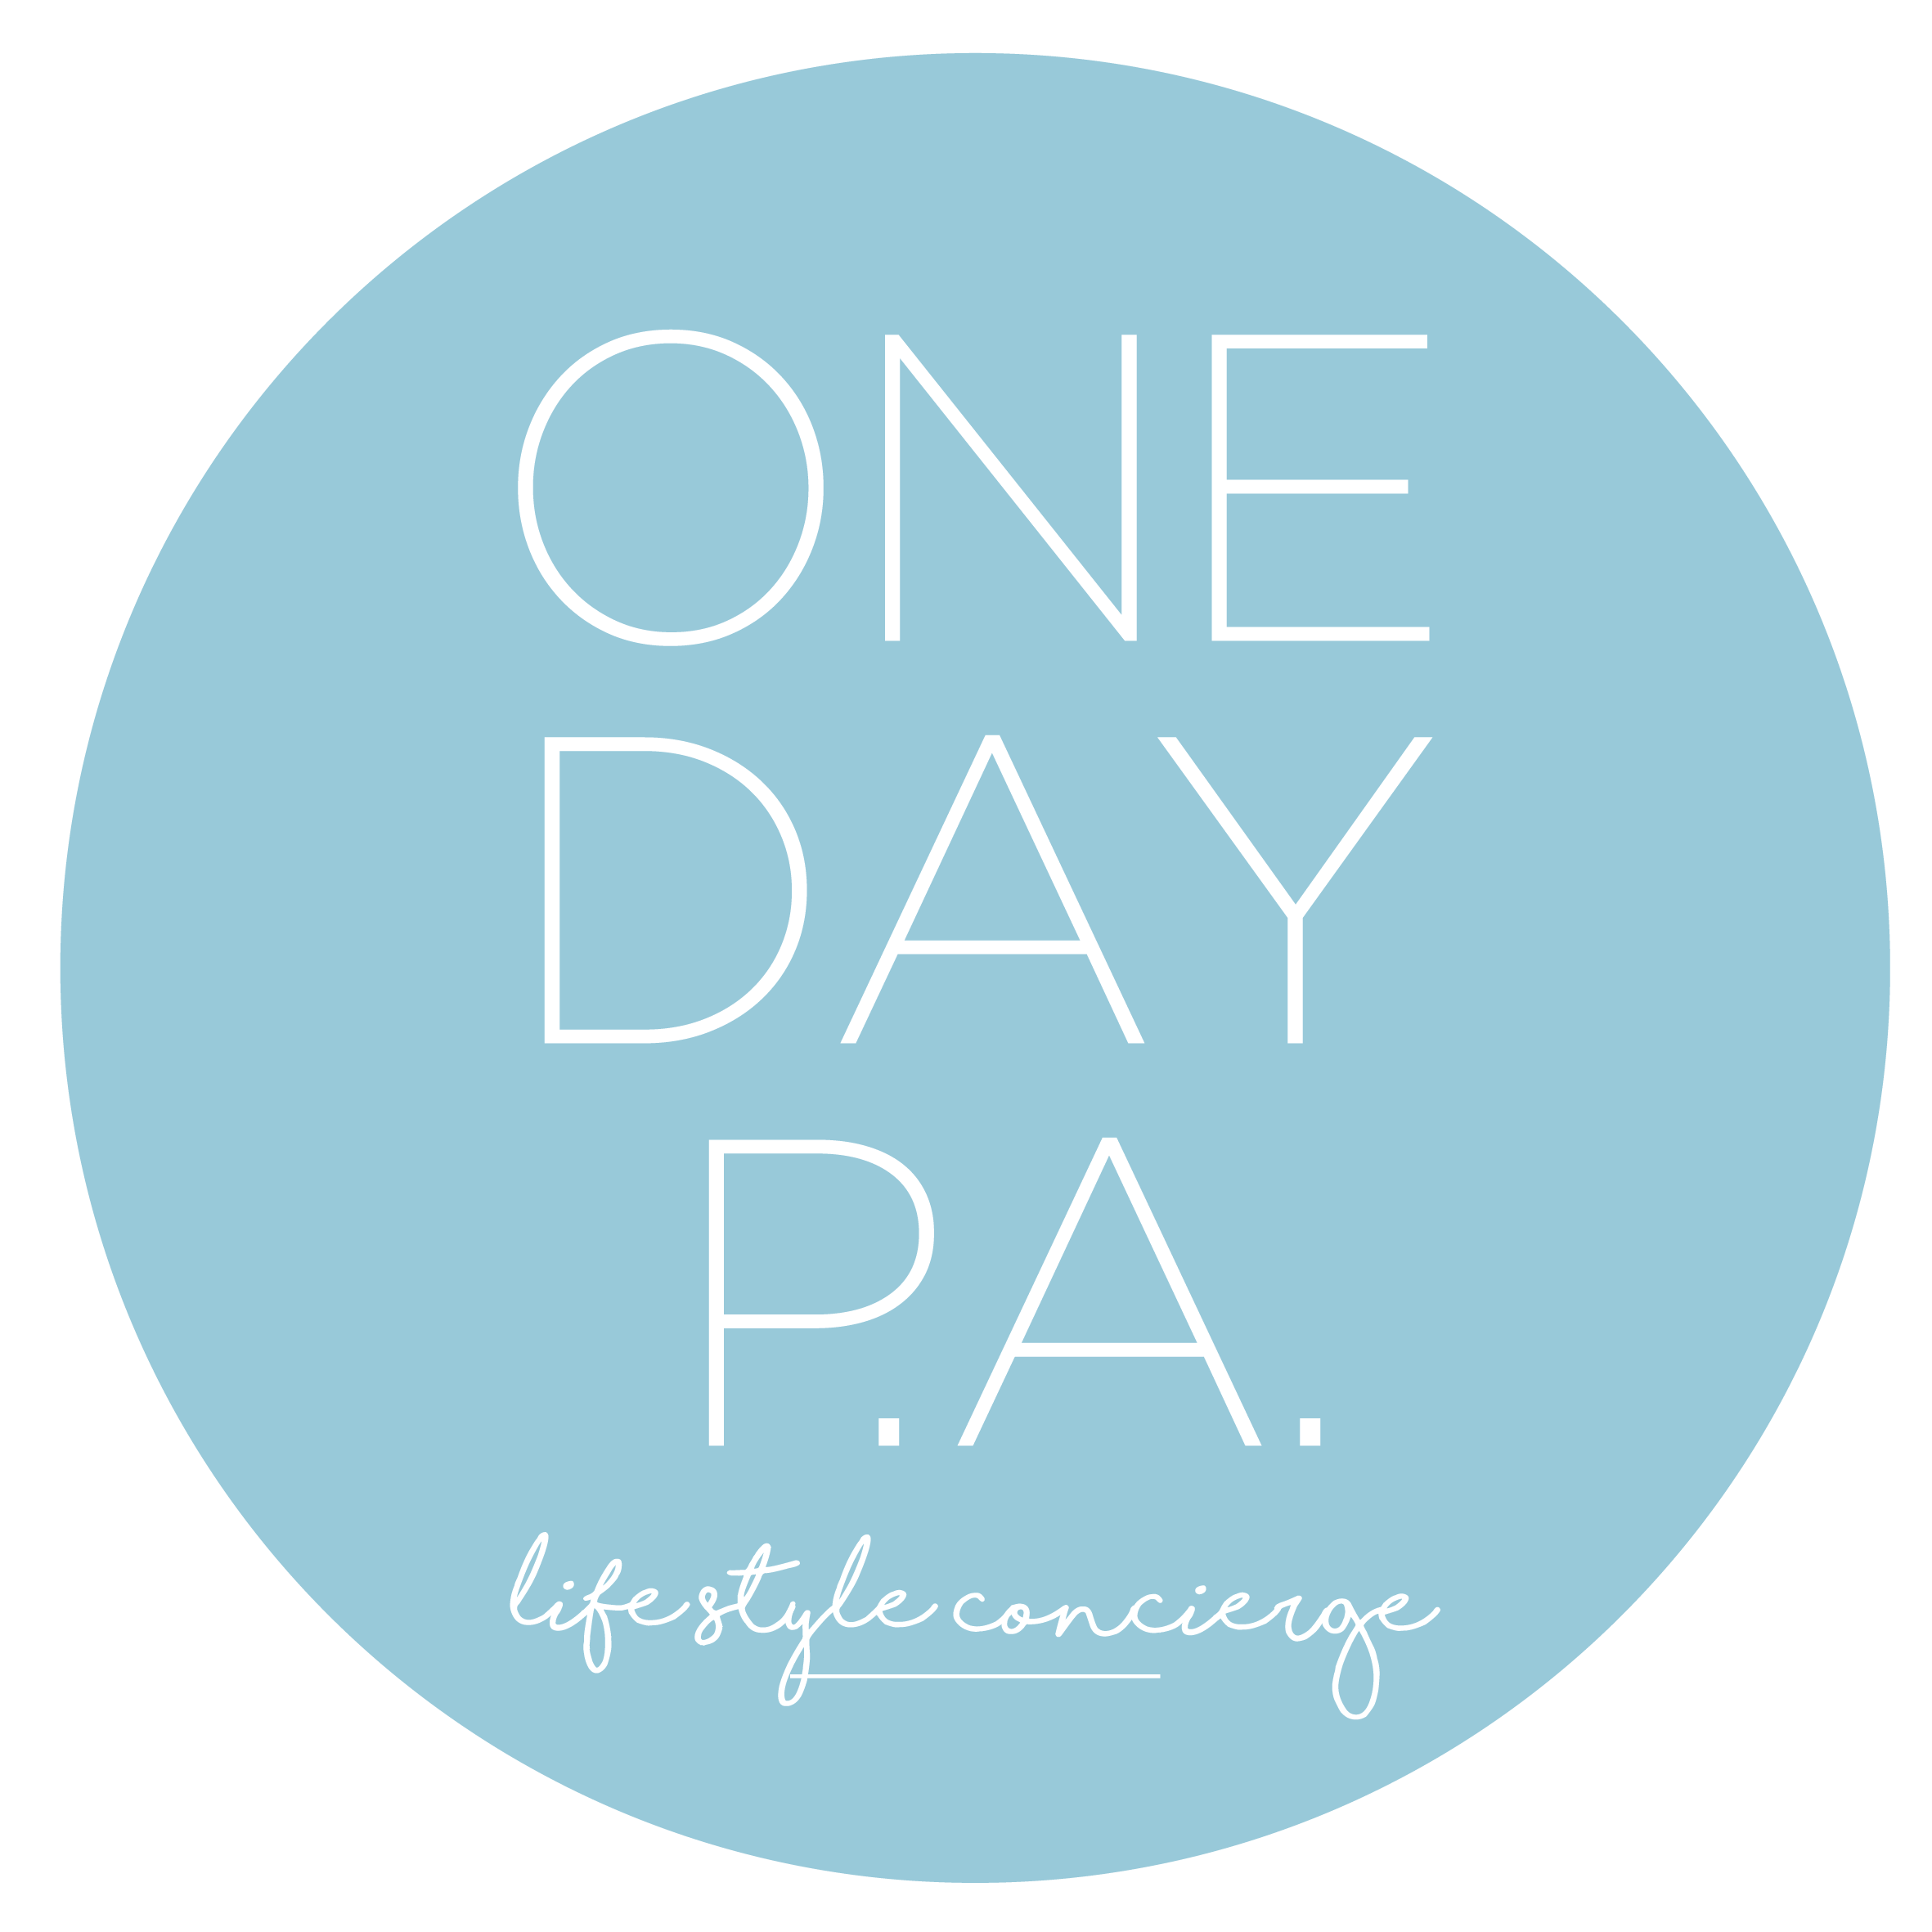 One Day P.A